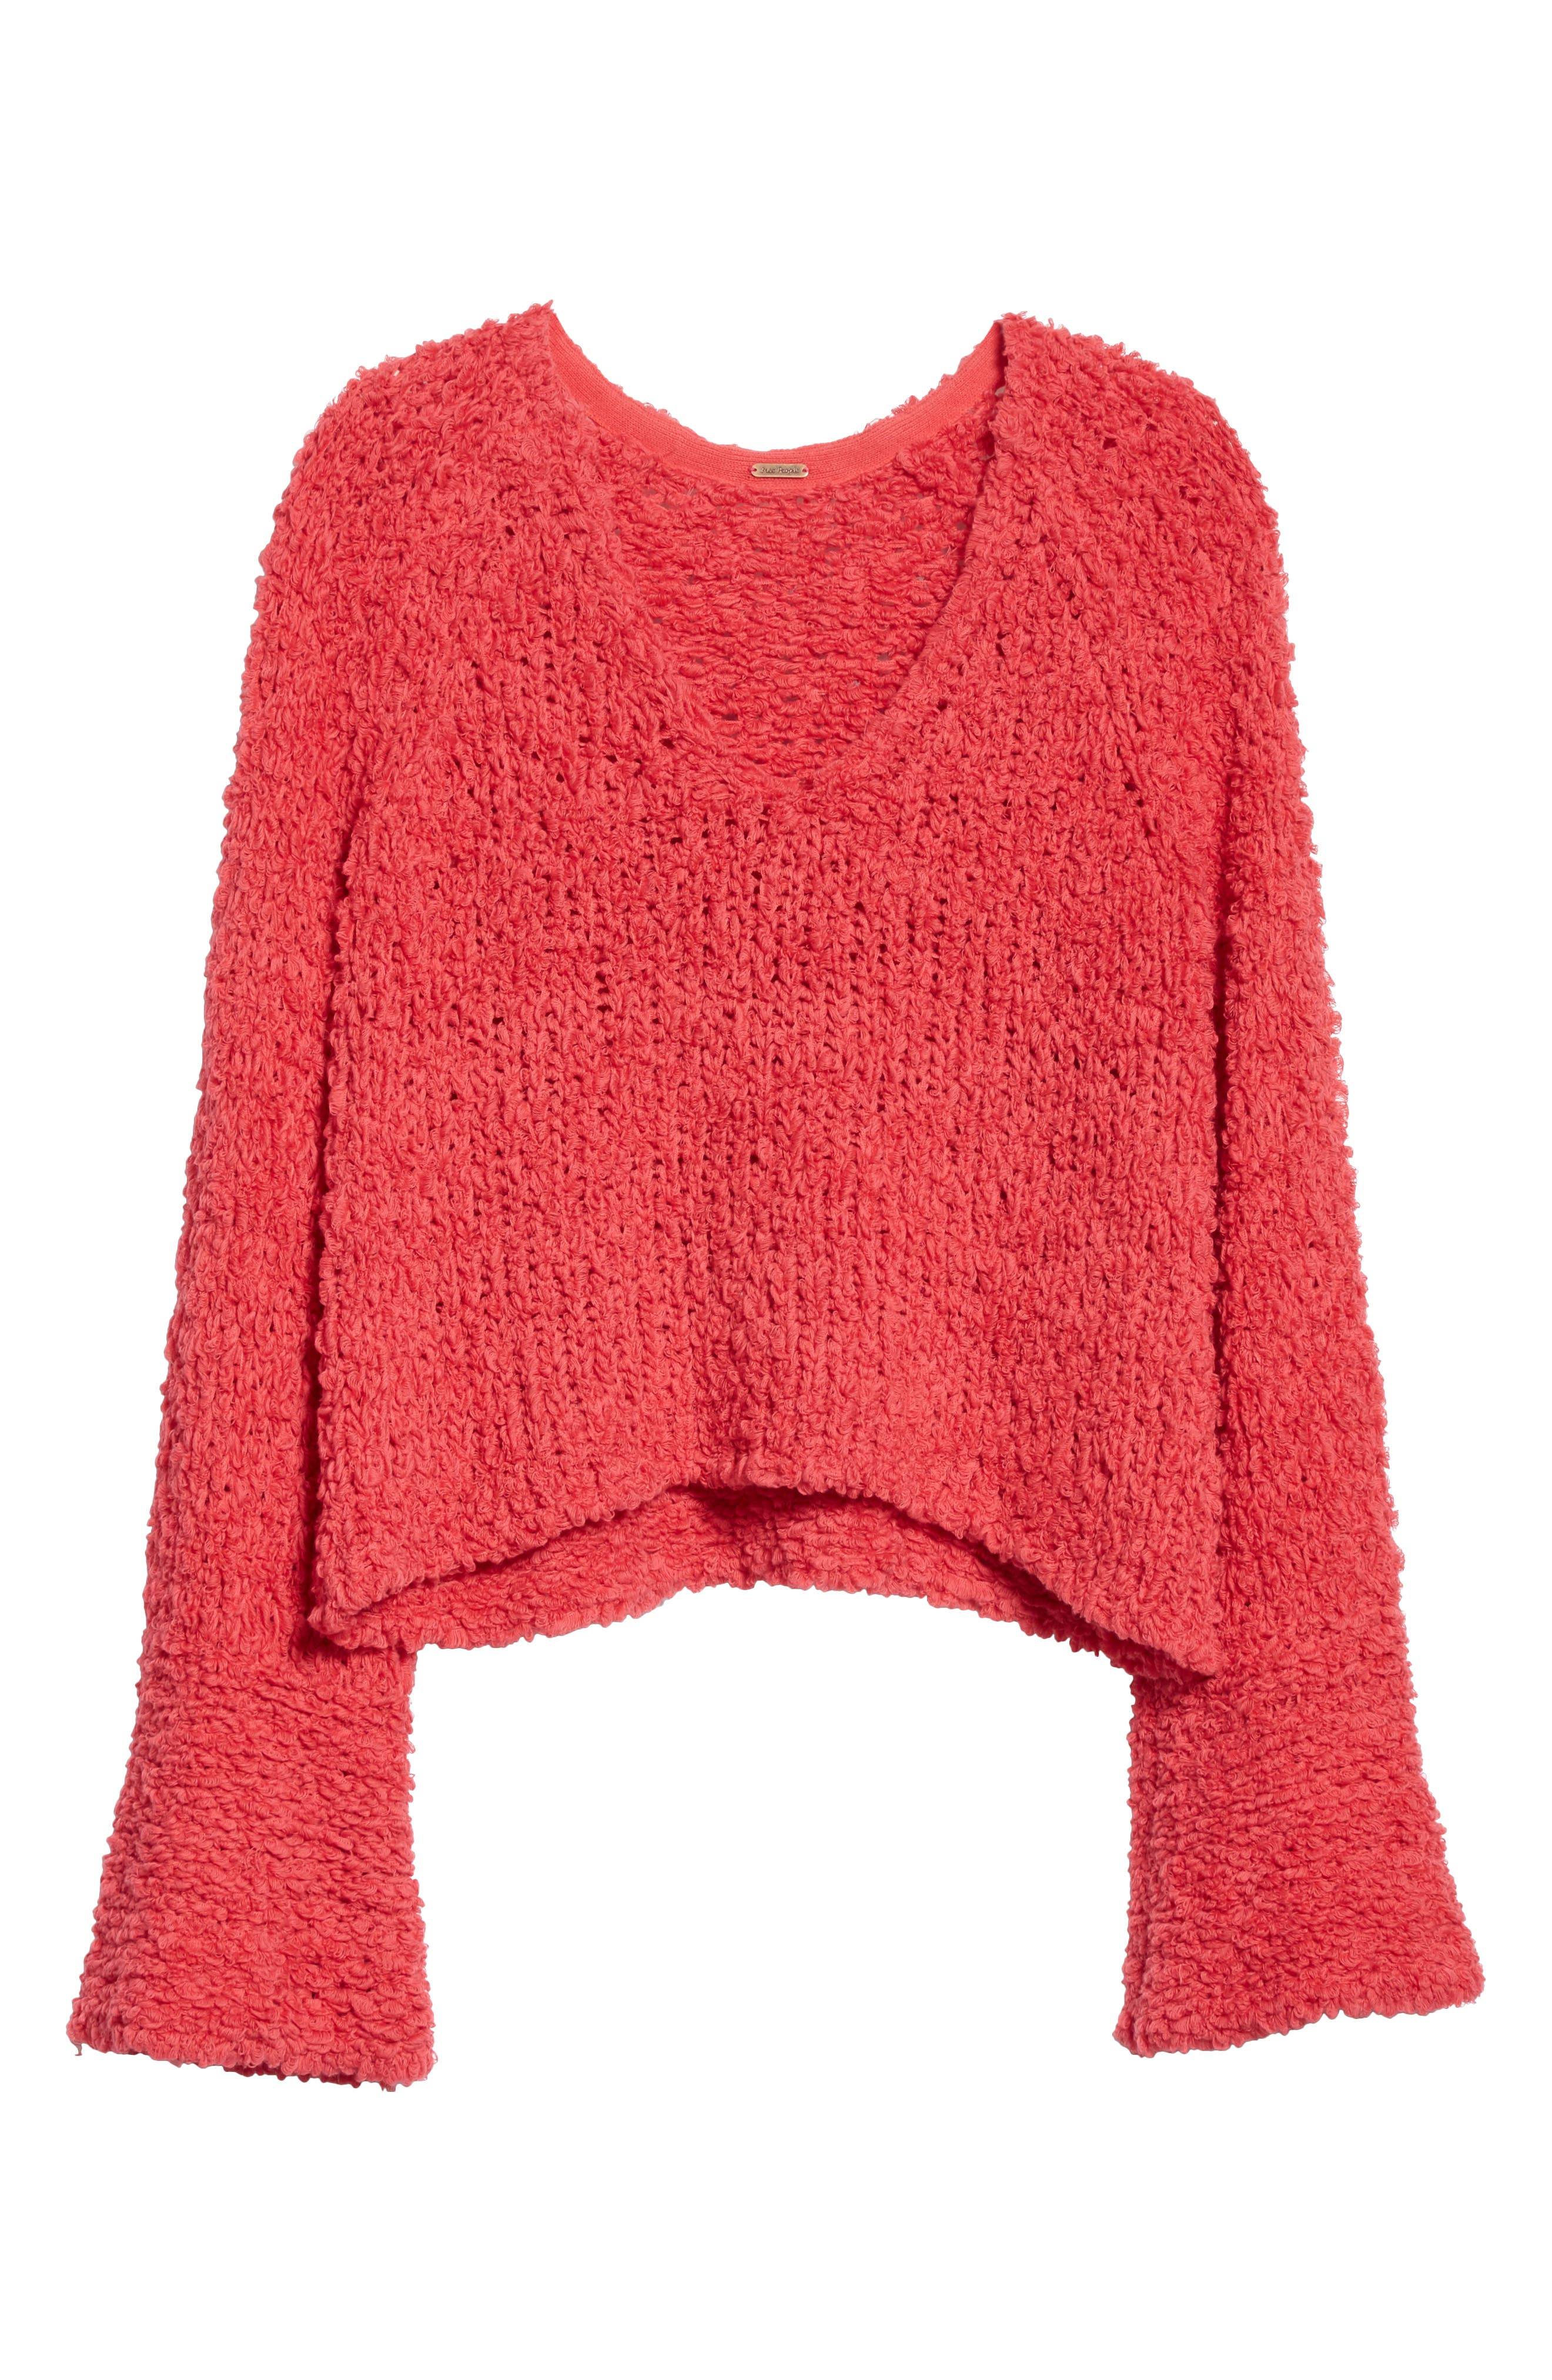 Sand Dune Sweater,                             Alternate thumbnail 6, color,                             Pink